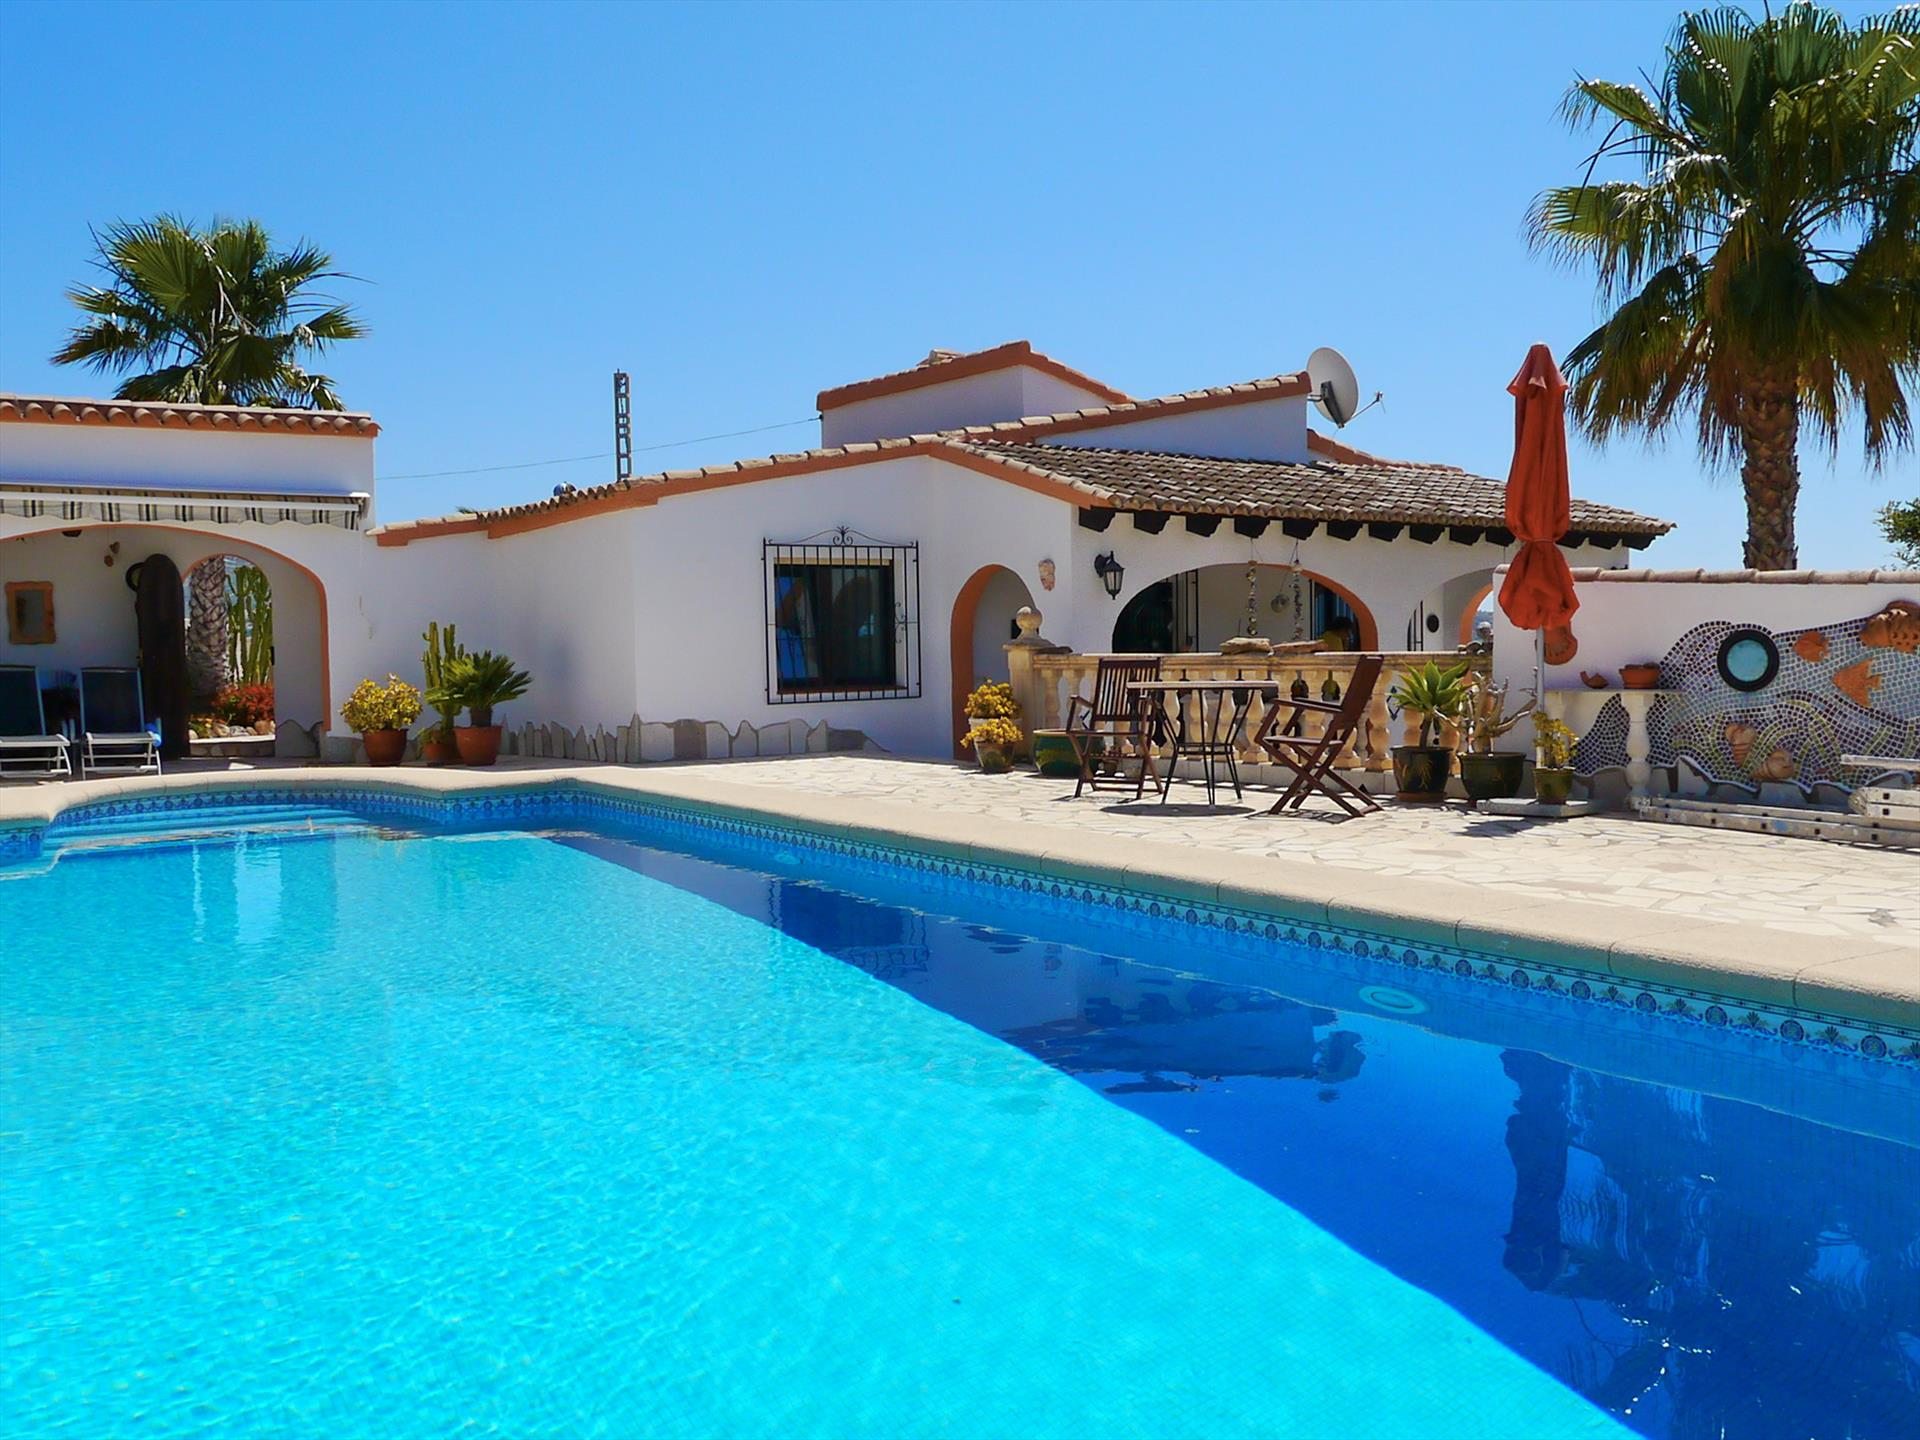 Flor, Wonderful and comfortable villa in Moraira, on the Costa Blanca, Spain  with private pool for 3 persons.....